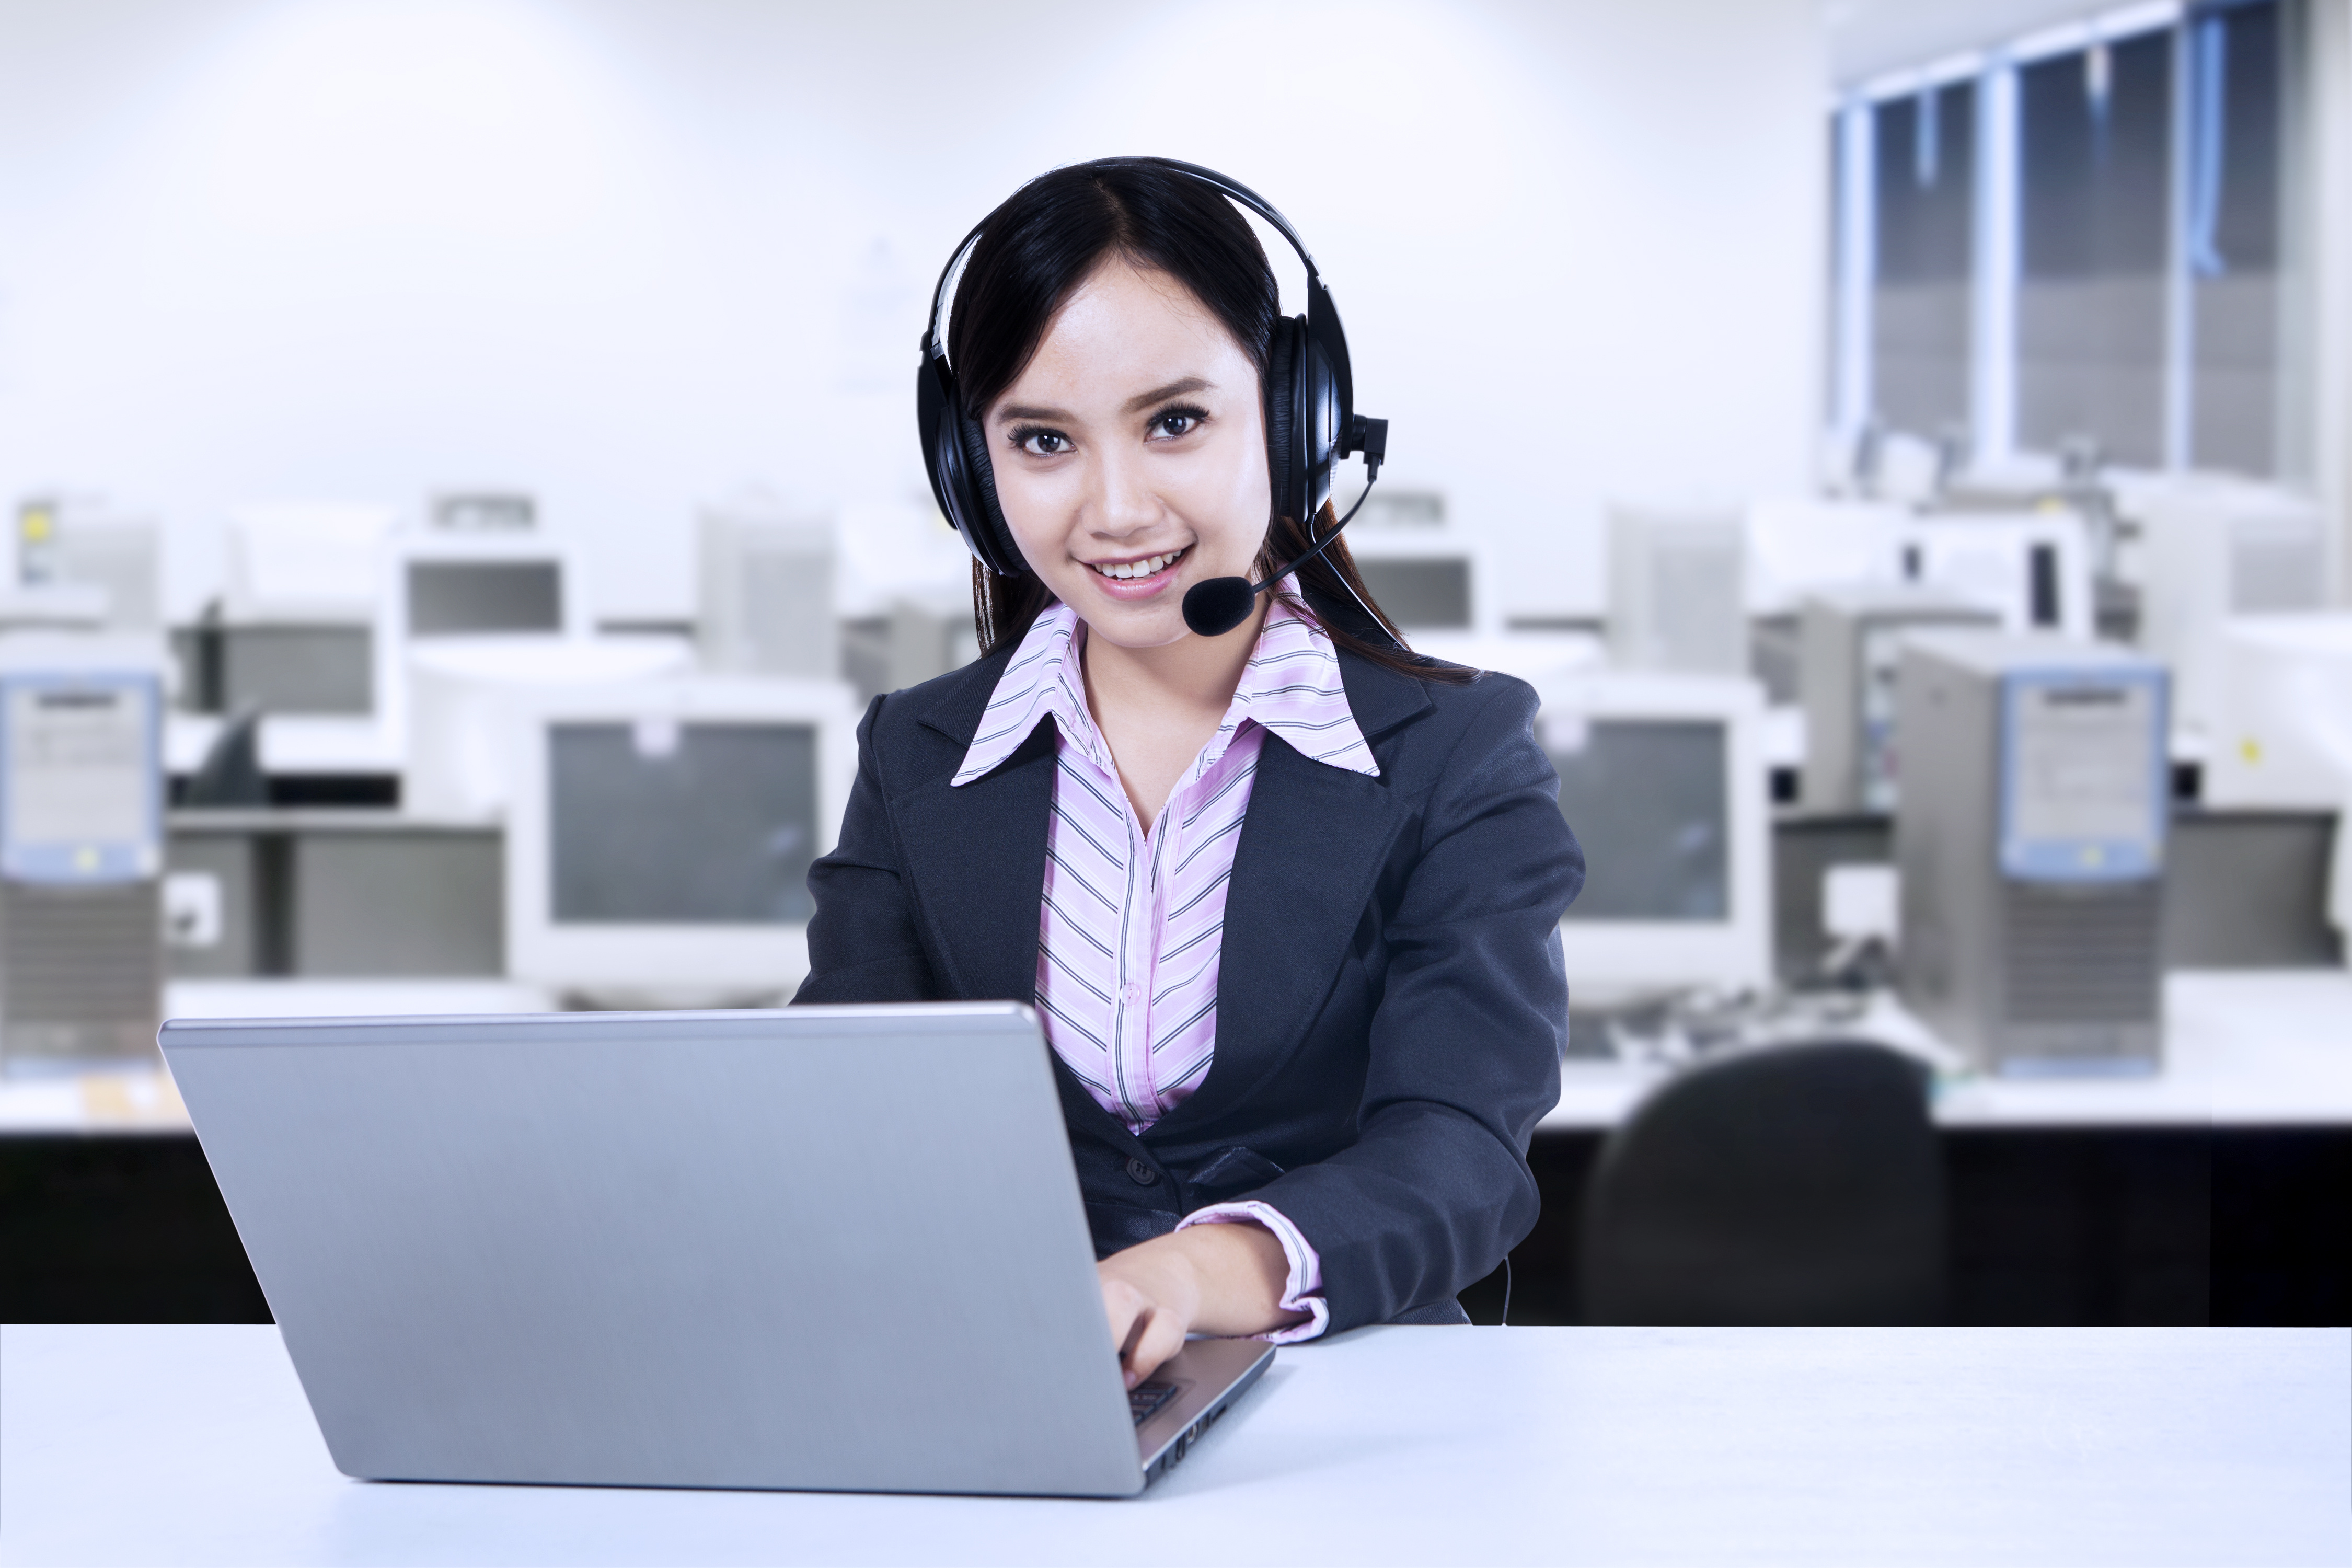 Customer Service Chat: Benefits, Scripts, and Tips